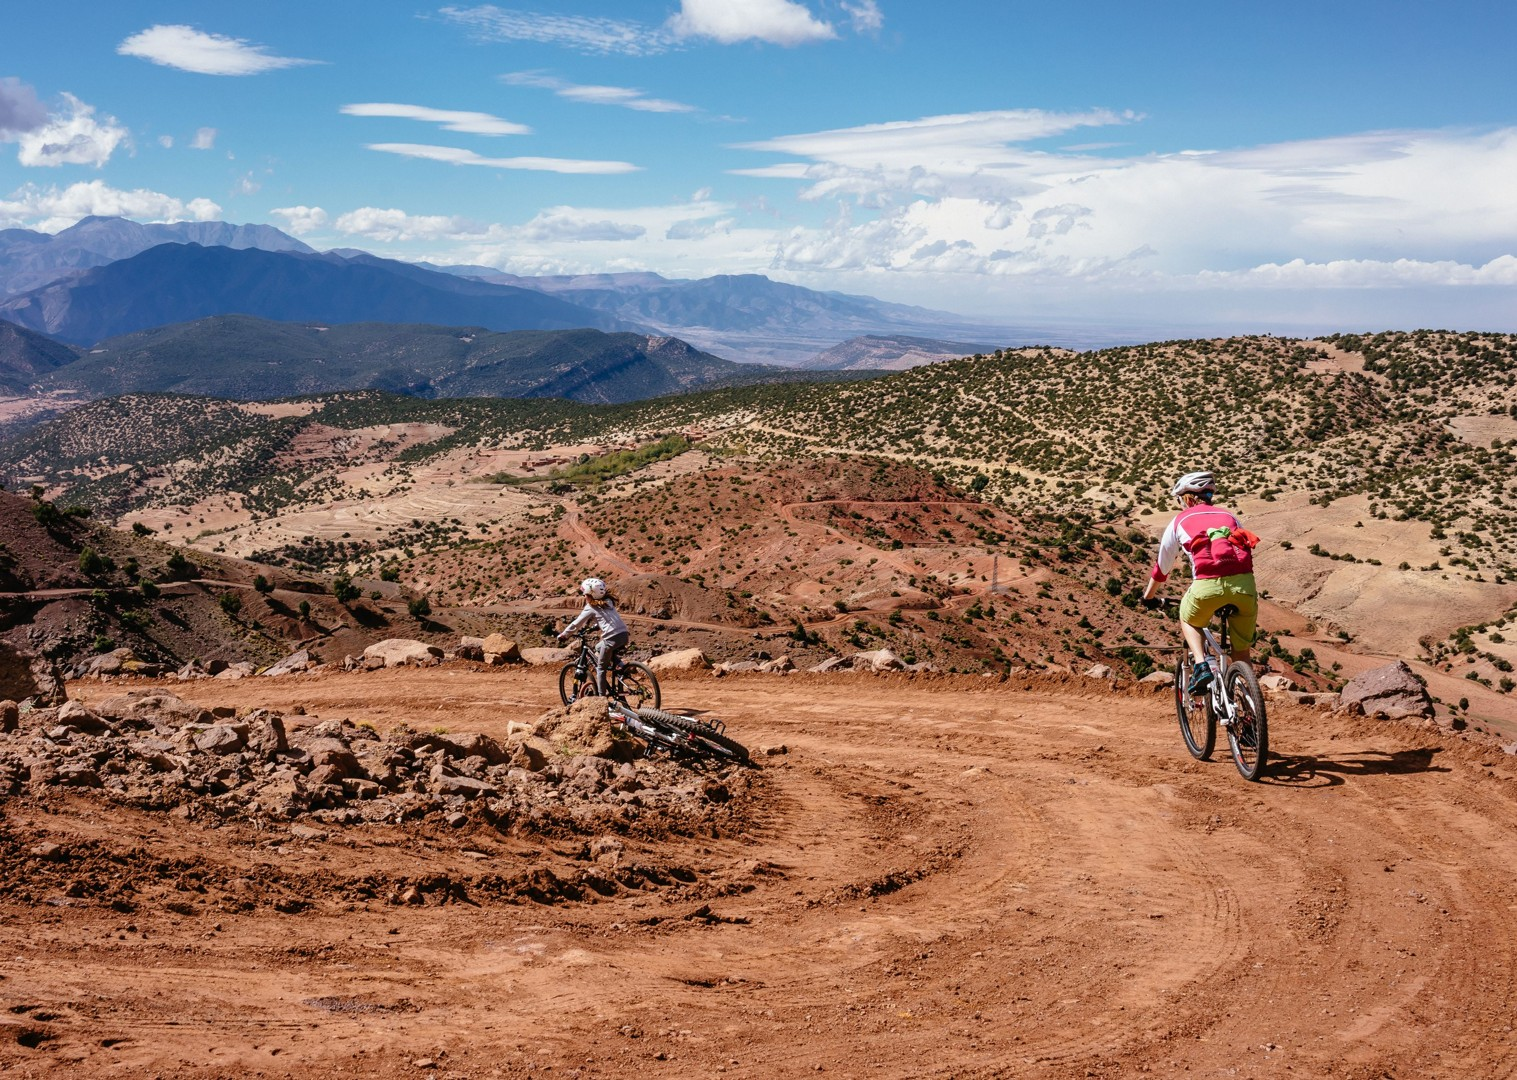 Family-Cycling-Holiday-Morocco-Desert-Mountains-Coast-sturns - Morocco - Desert, Mountains and Coast - Family Cycling